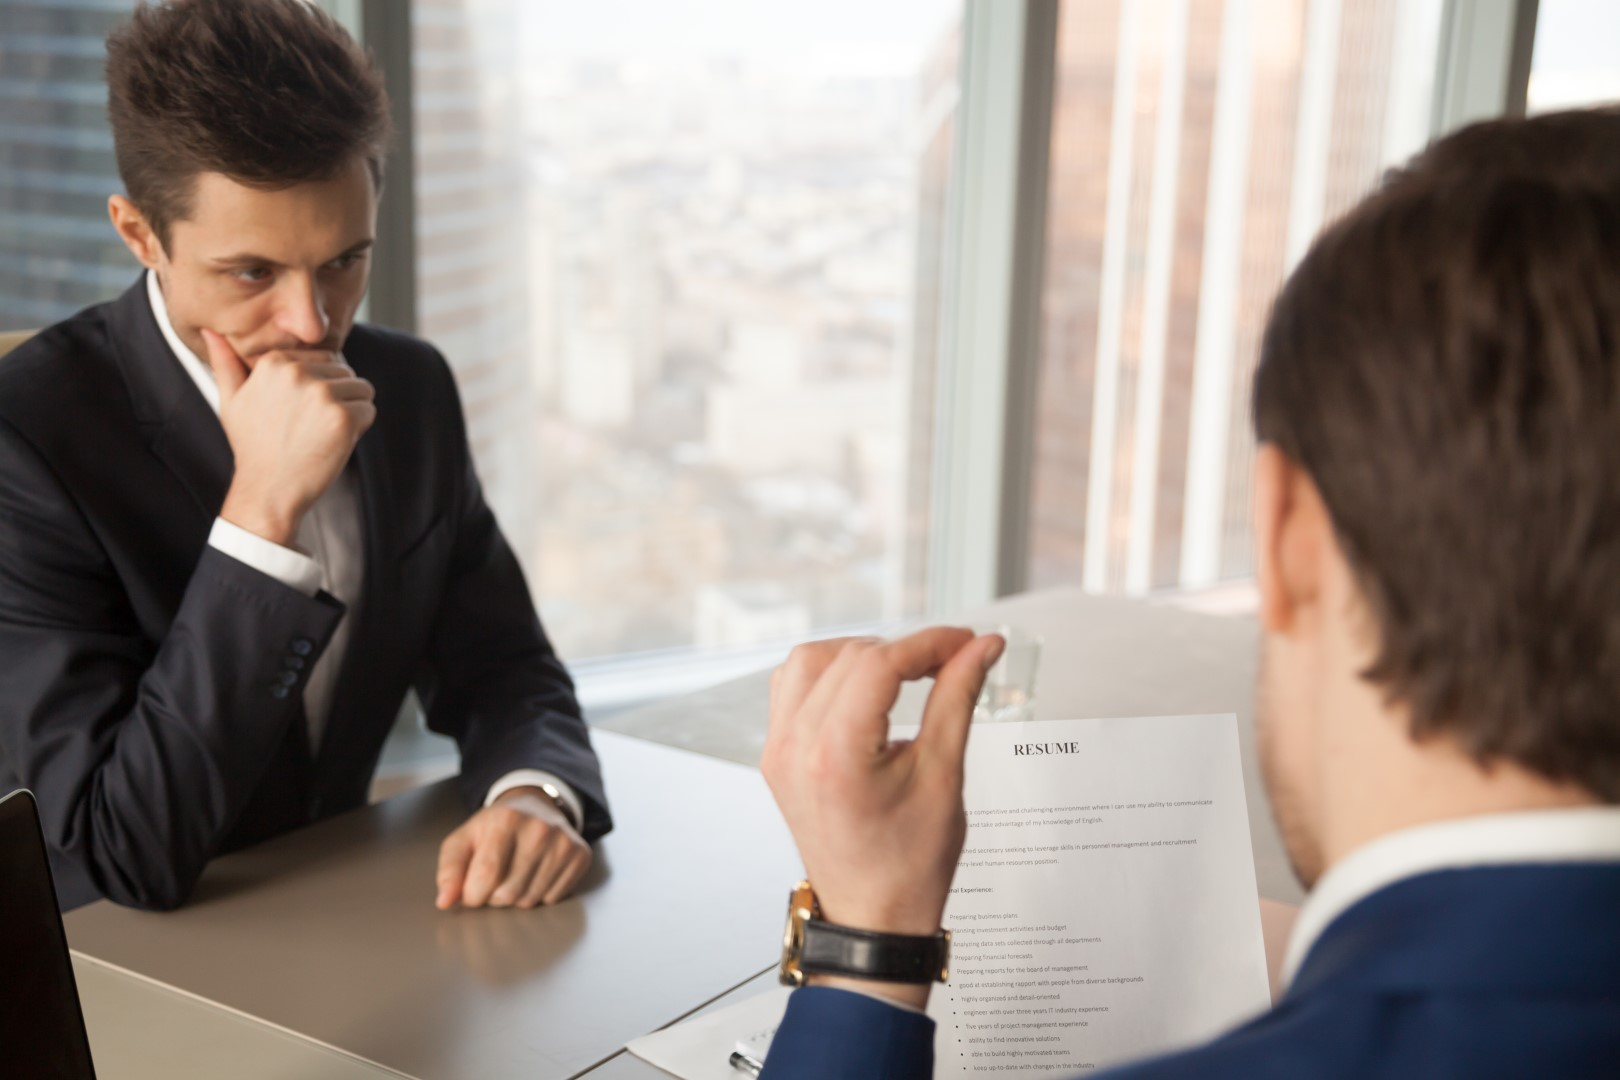 1 in 5 HR managers have asked illegal interview questions